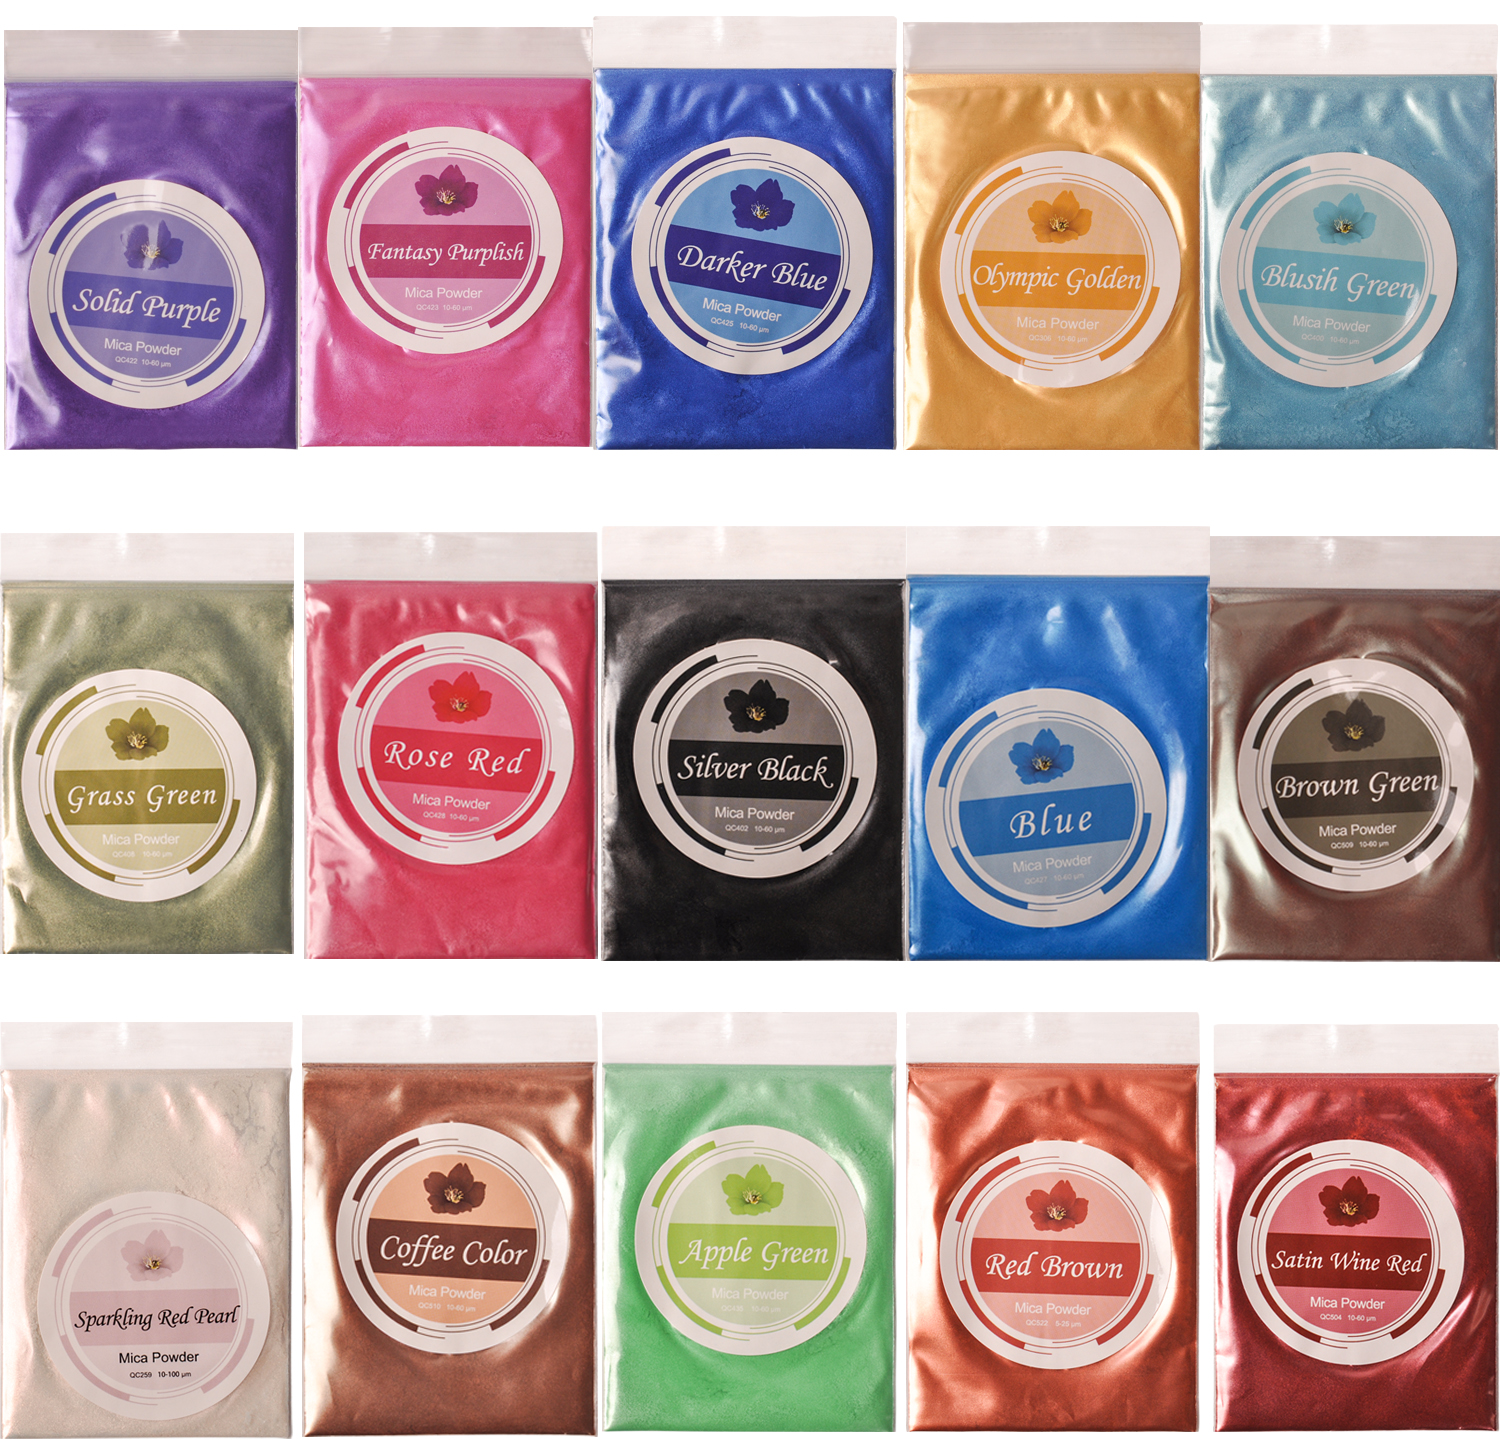 Epoxy Resin Dye , Mica Powder , Soap Dye Hand , Soap Making Supplies , Eyeshadow And Lips Makeup Dye 10 G